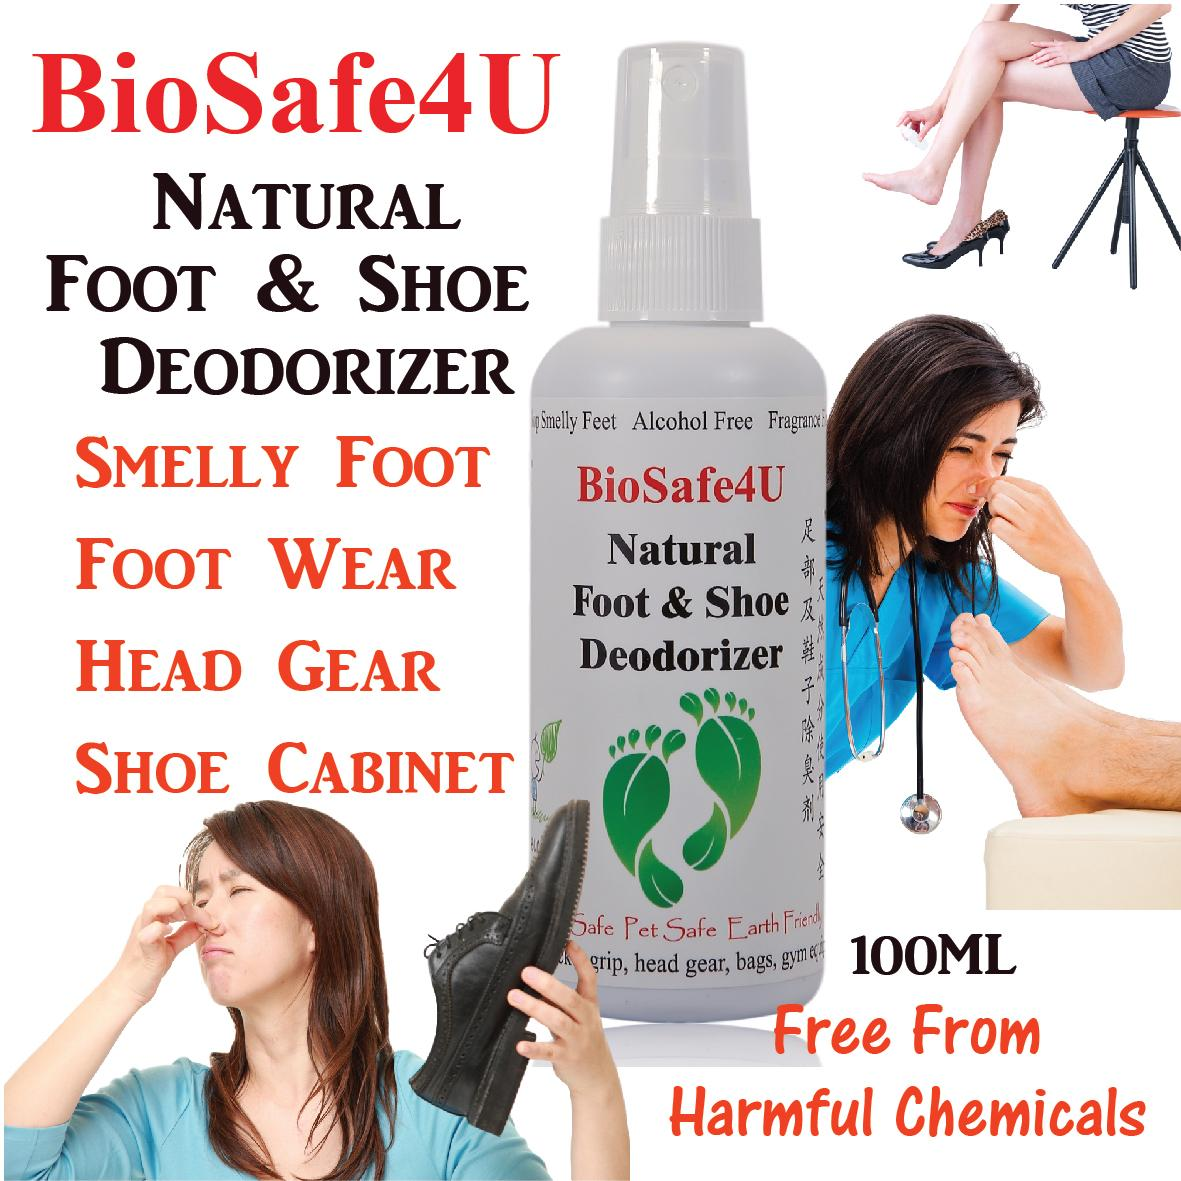 Who Sells The Cheapest Biosafe4U Natural Foot Shoe Deodorizer Online